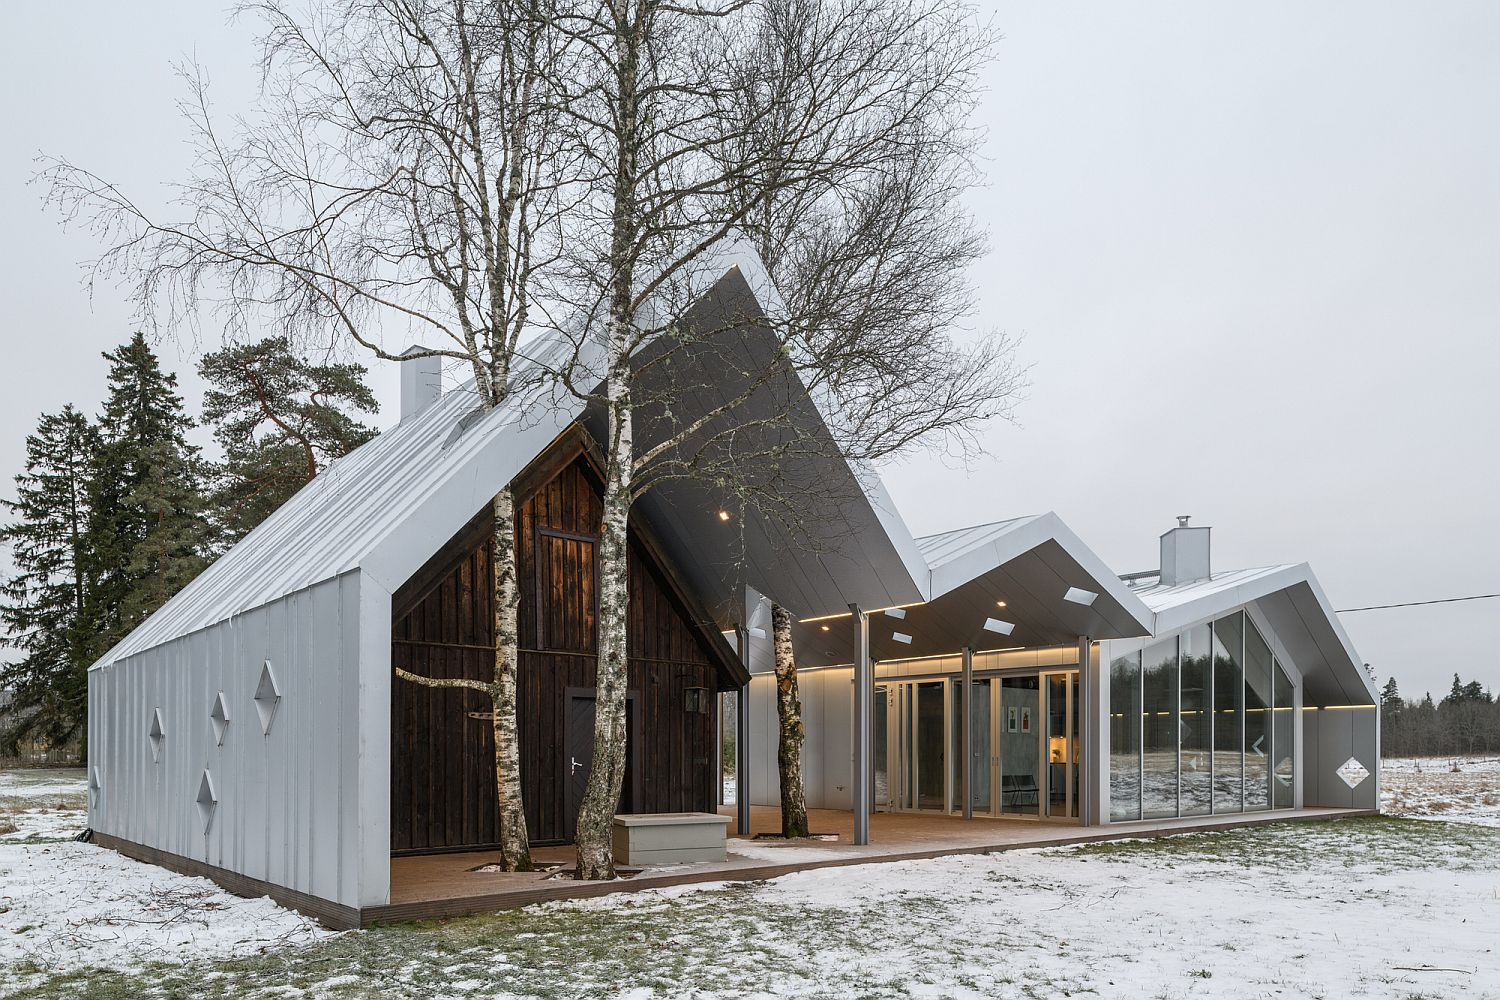 Light-and-fun-overall-design-of-the-sauna-makes-it-a-visual-delight